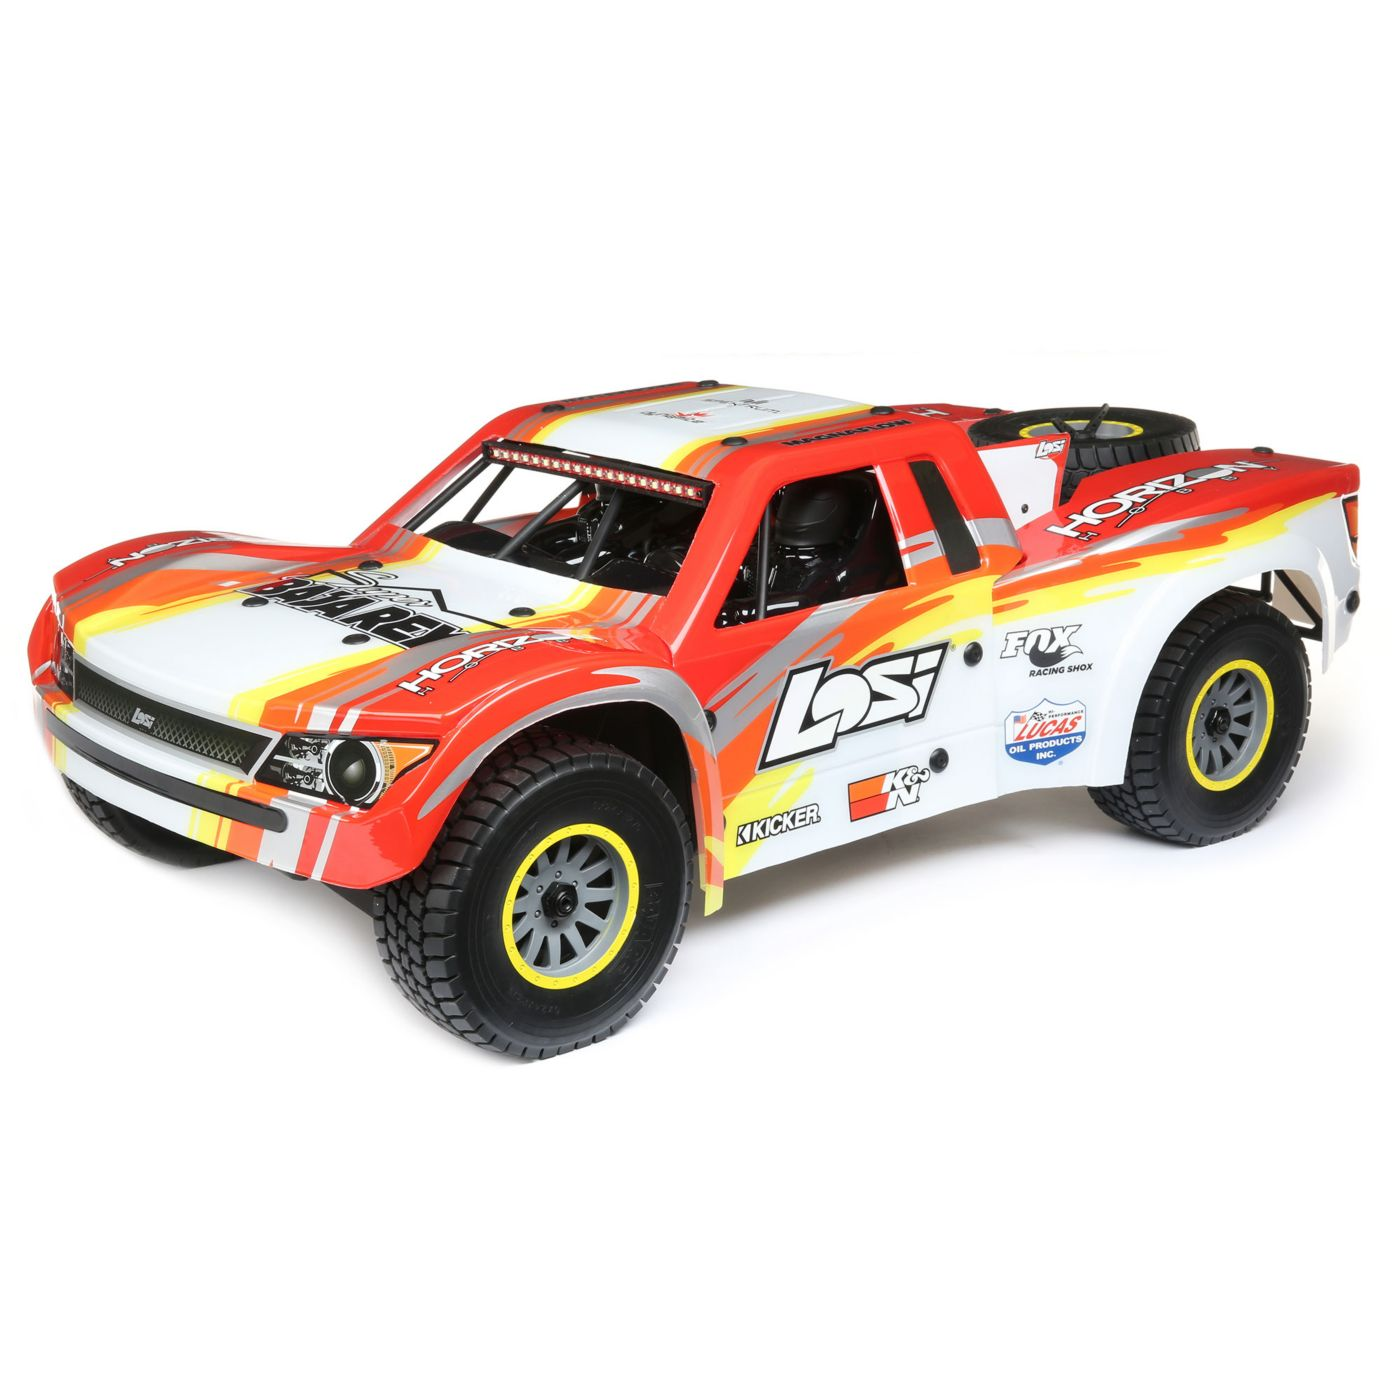 Losi Super Baja Rey Brushless 1/6 4WD Red RTR 1